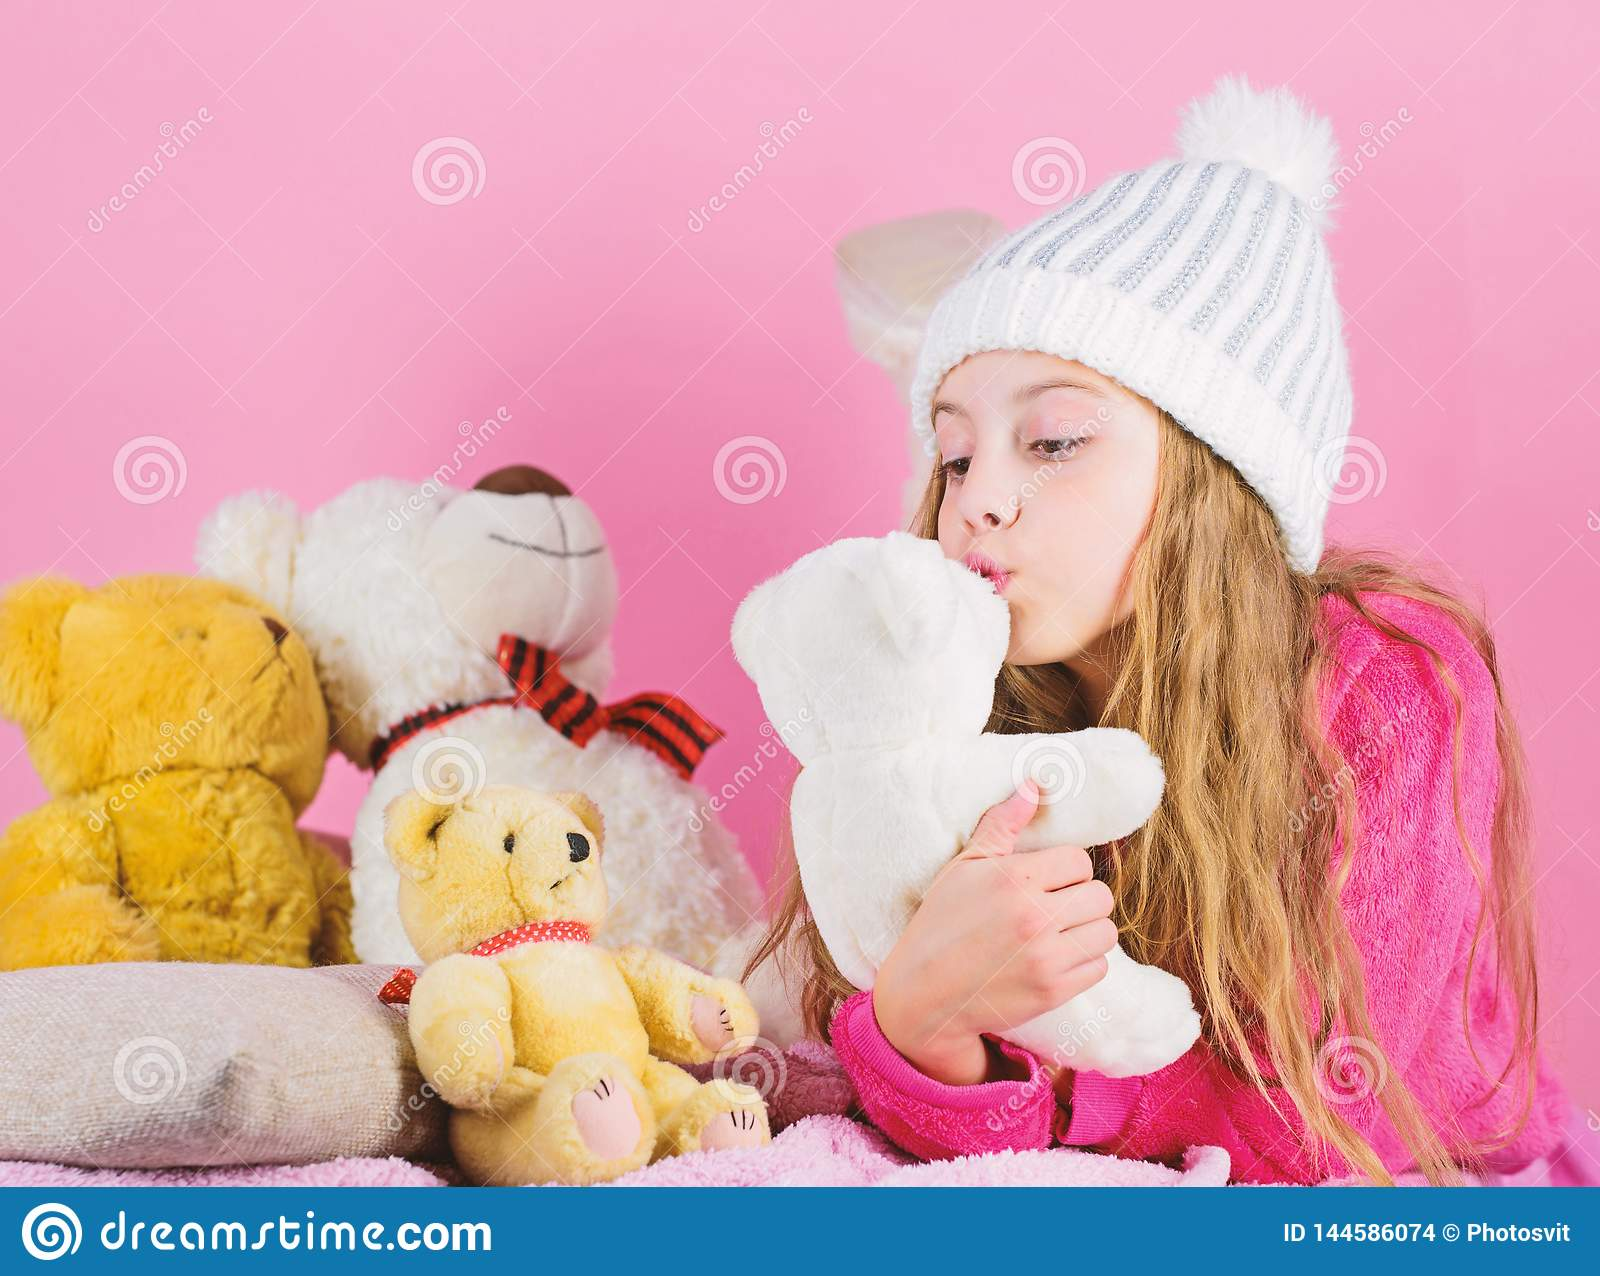 Kid little girl play with soft toy teddy bear on pink background. Teddy bears help children handle emotions and limit